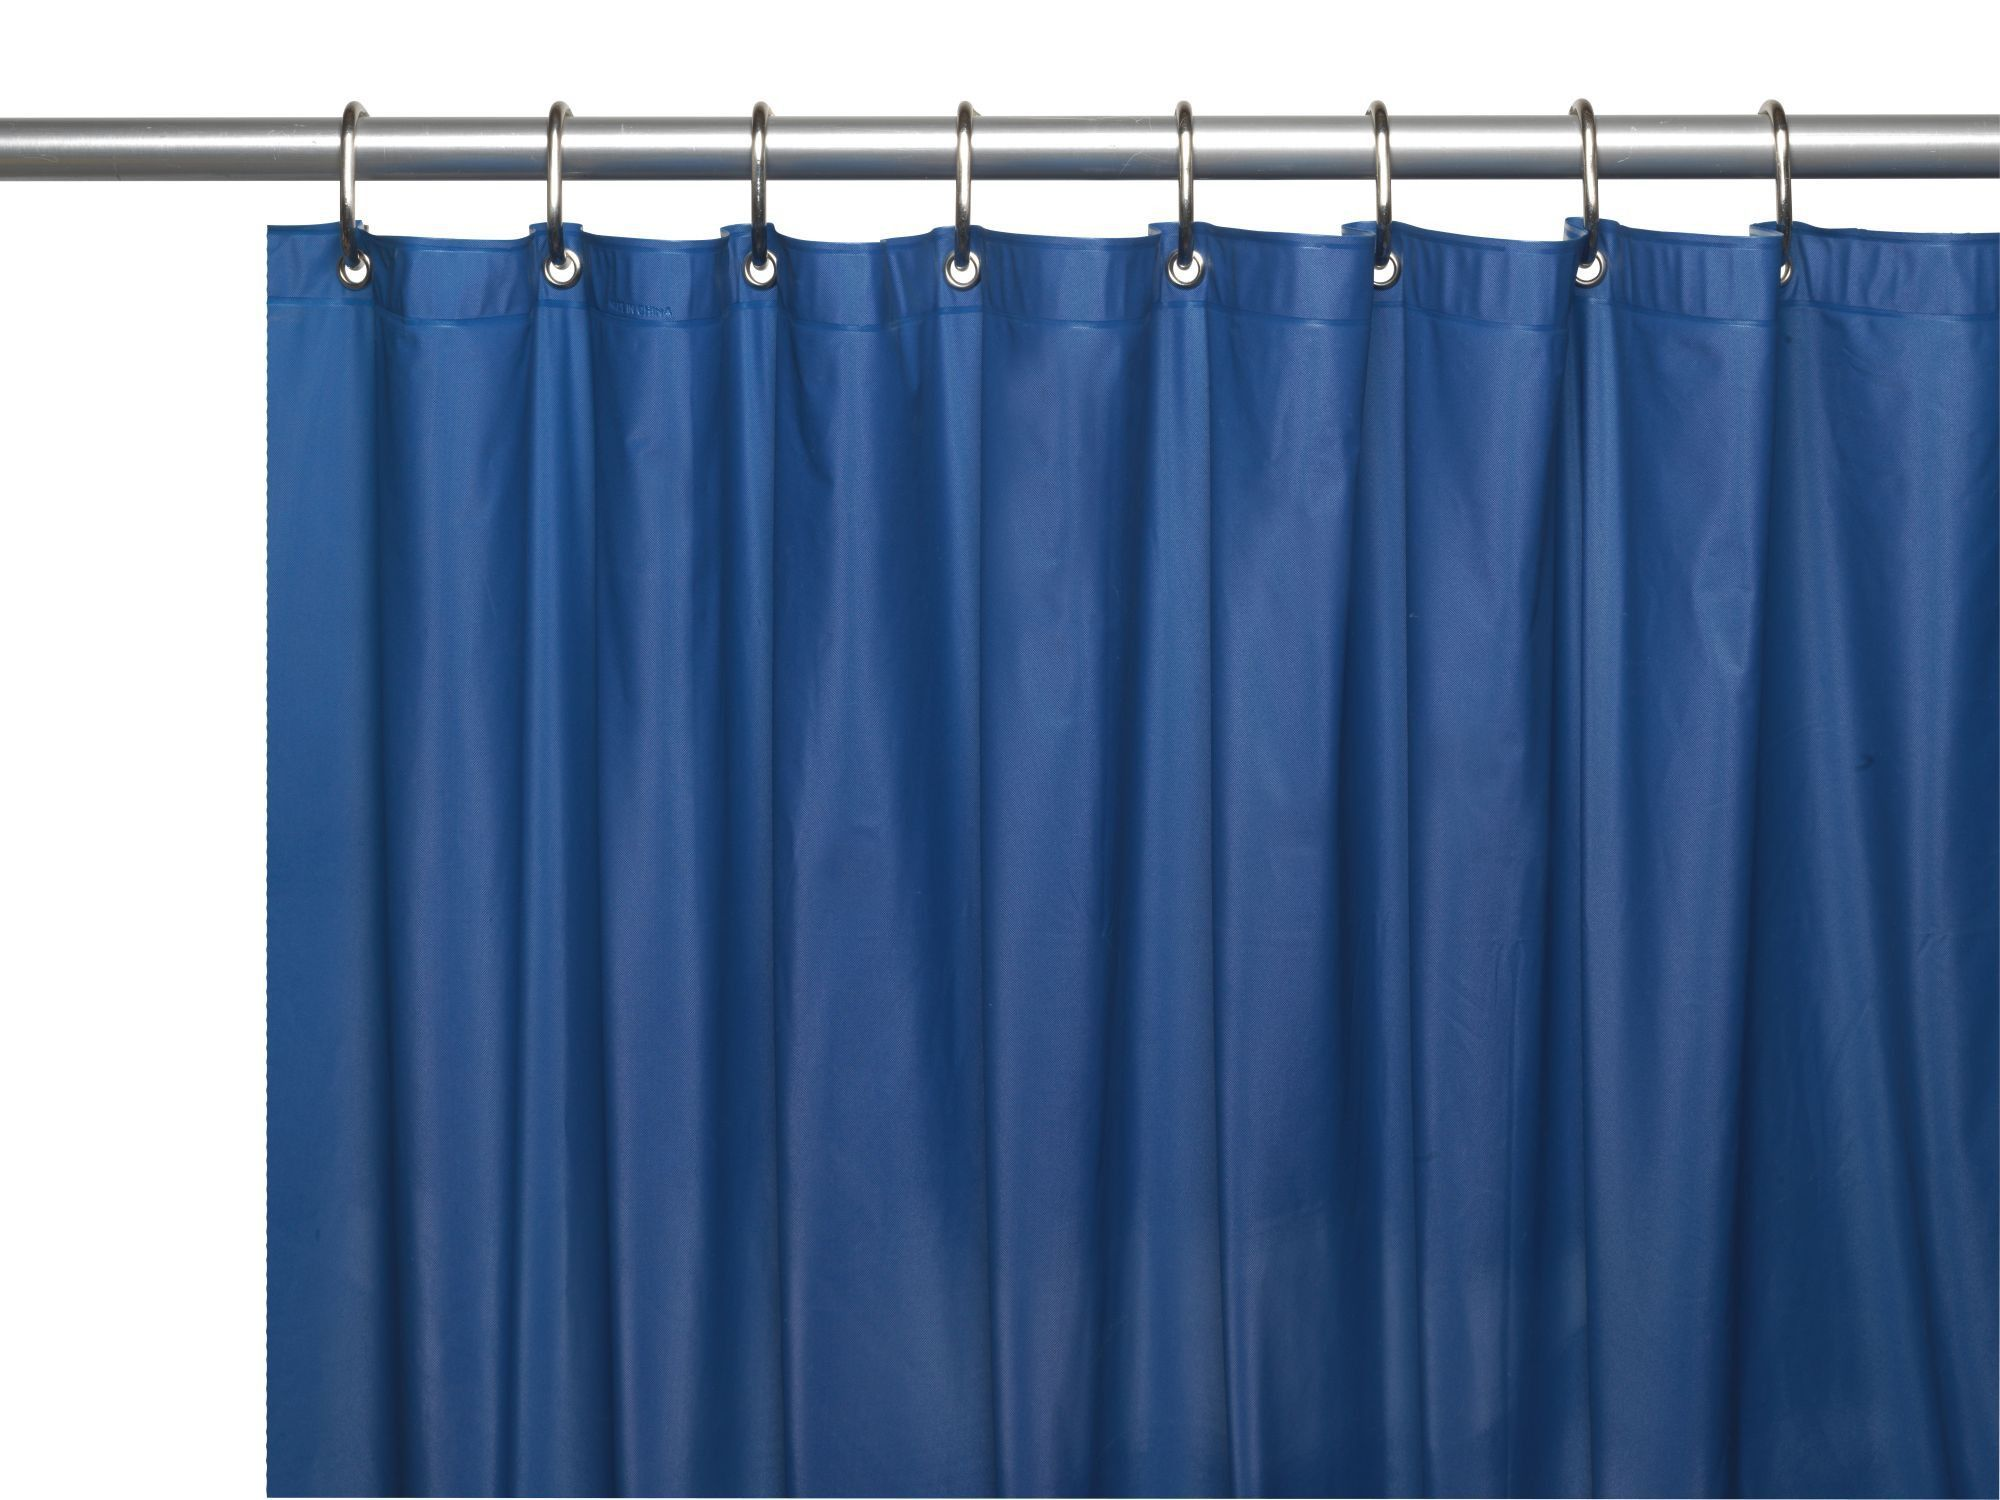 Royal Bath Extra Heavy 8 Gauge Vinyl Shower Curtain Liner with Metal ...